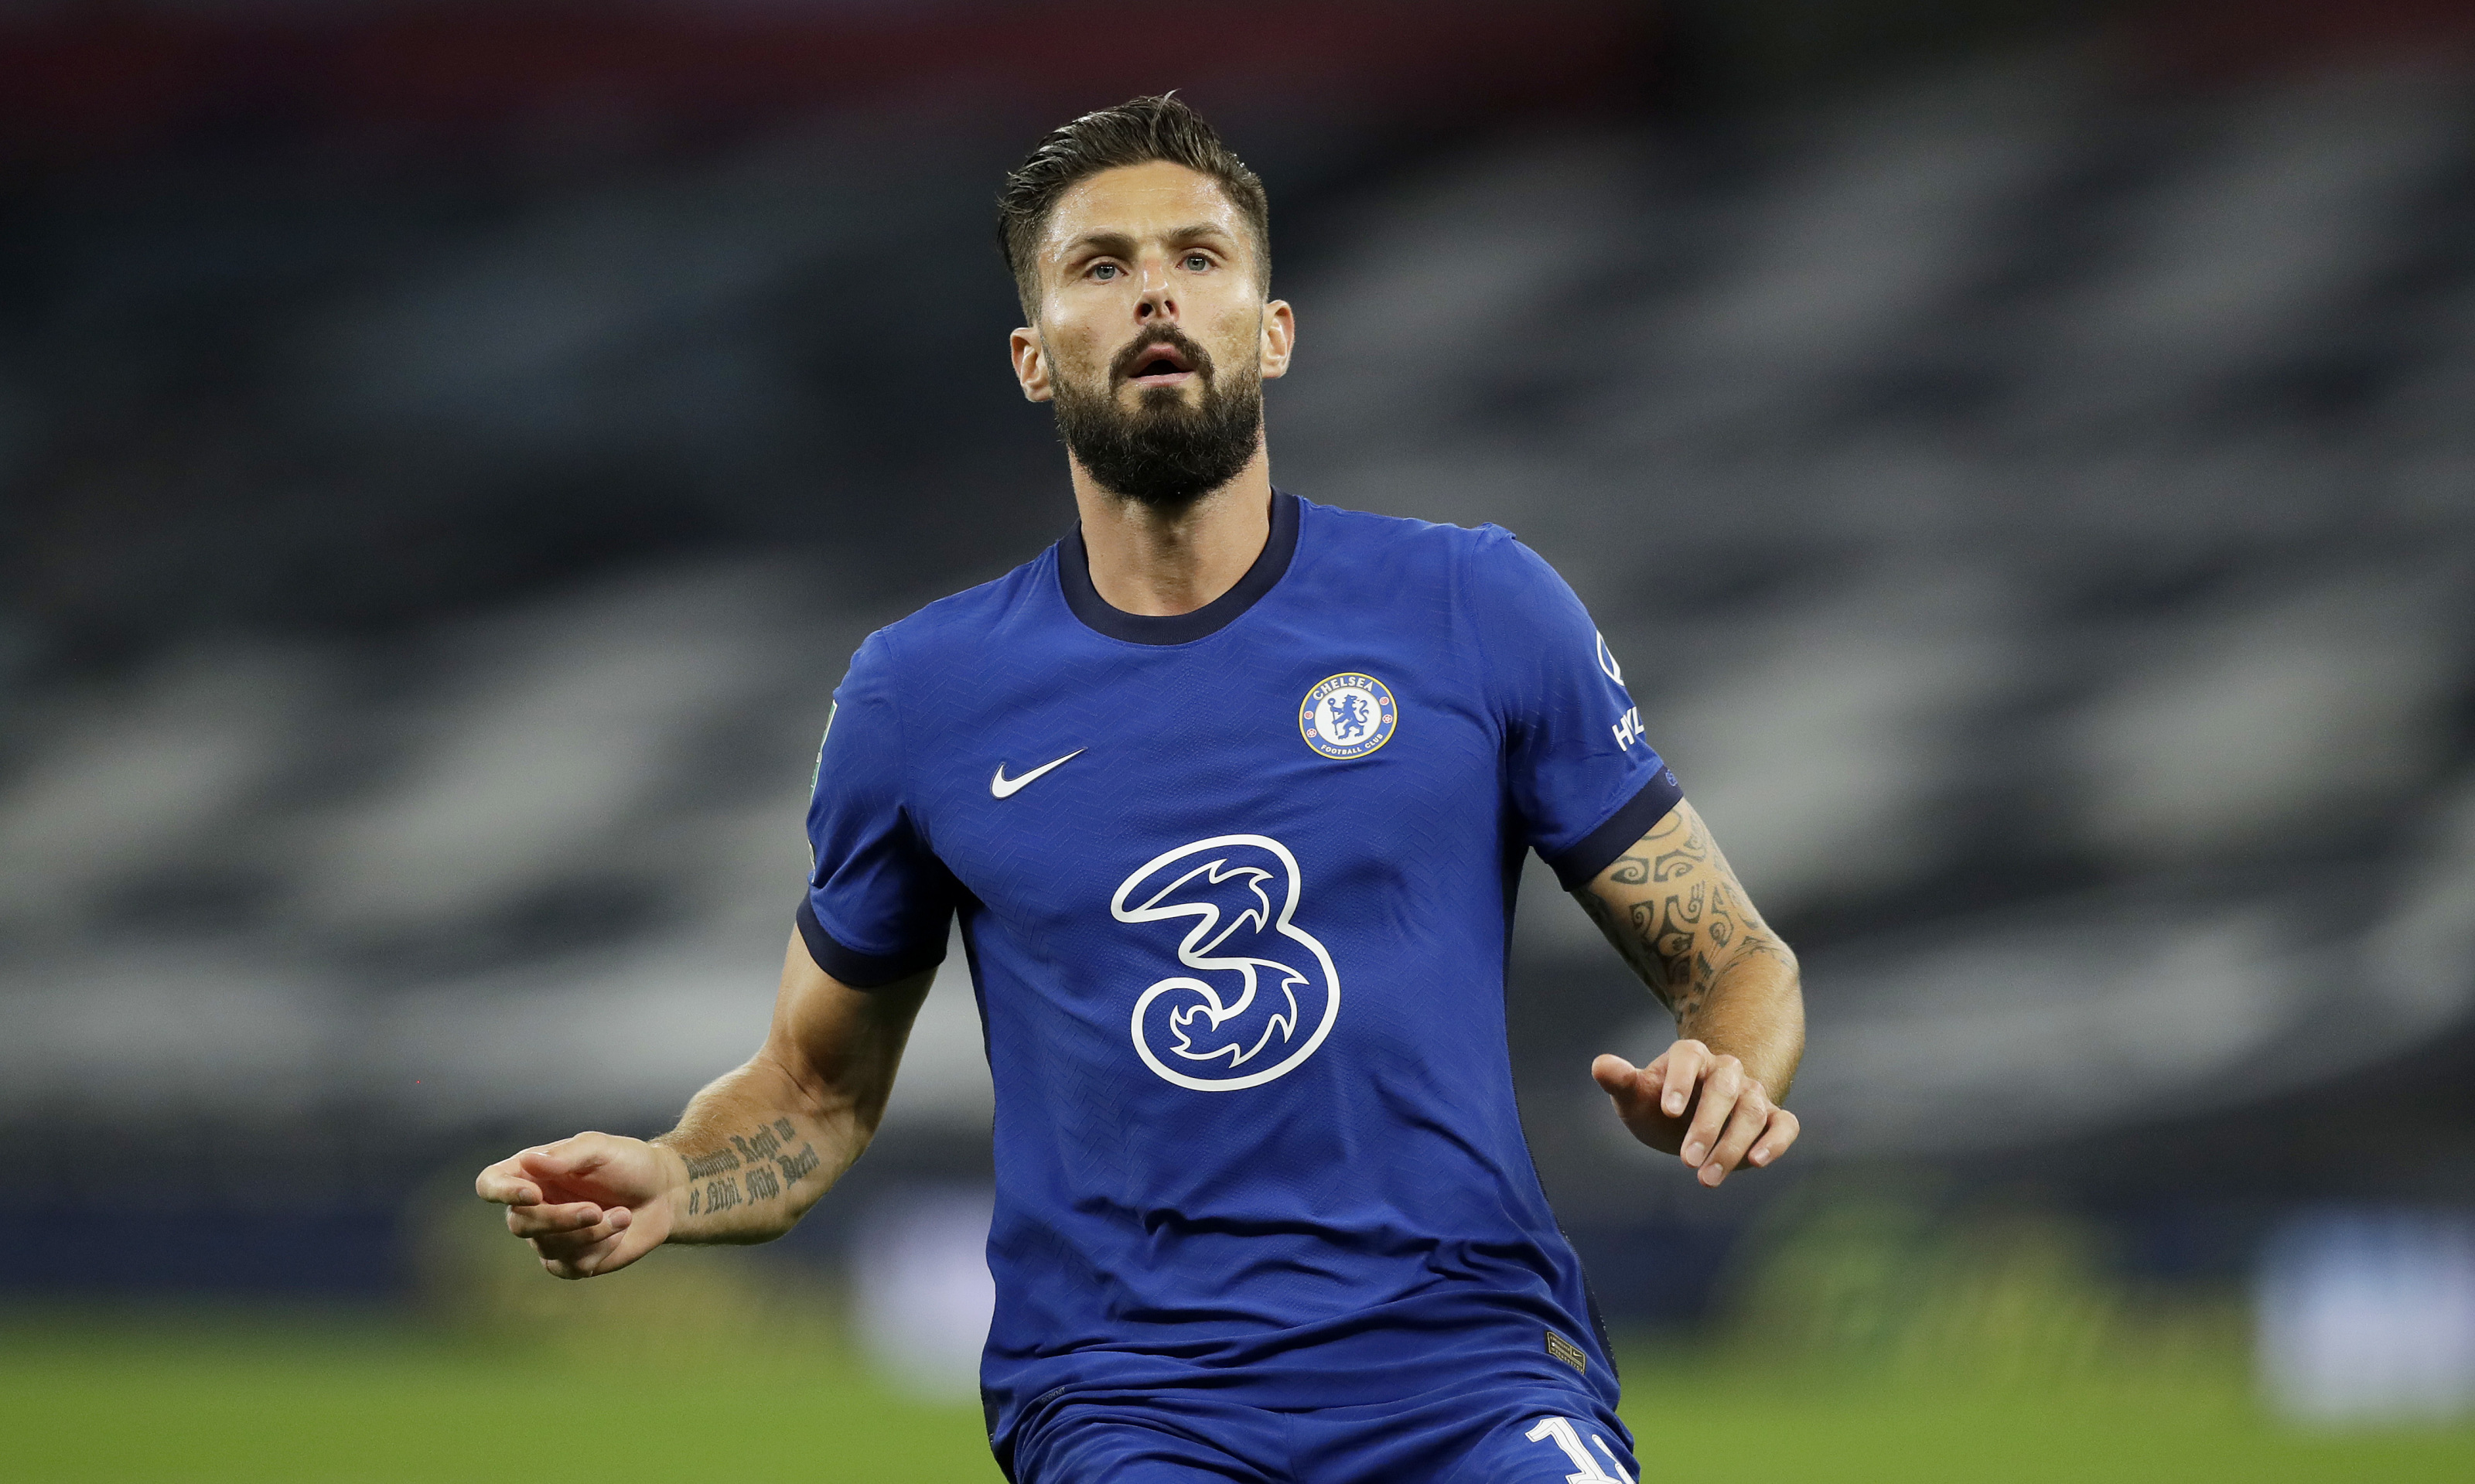 Chelsea: Olivier Giroud must start against Newcastle and often afterwards